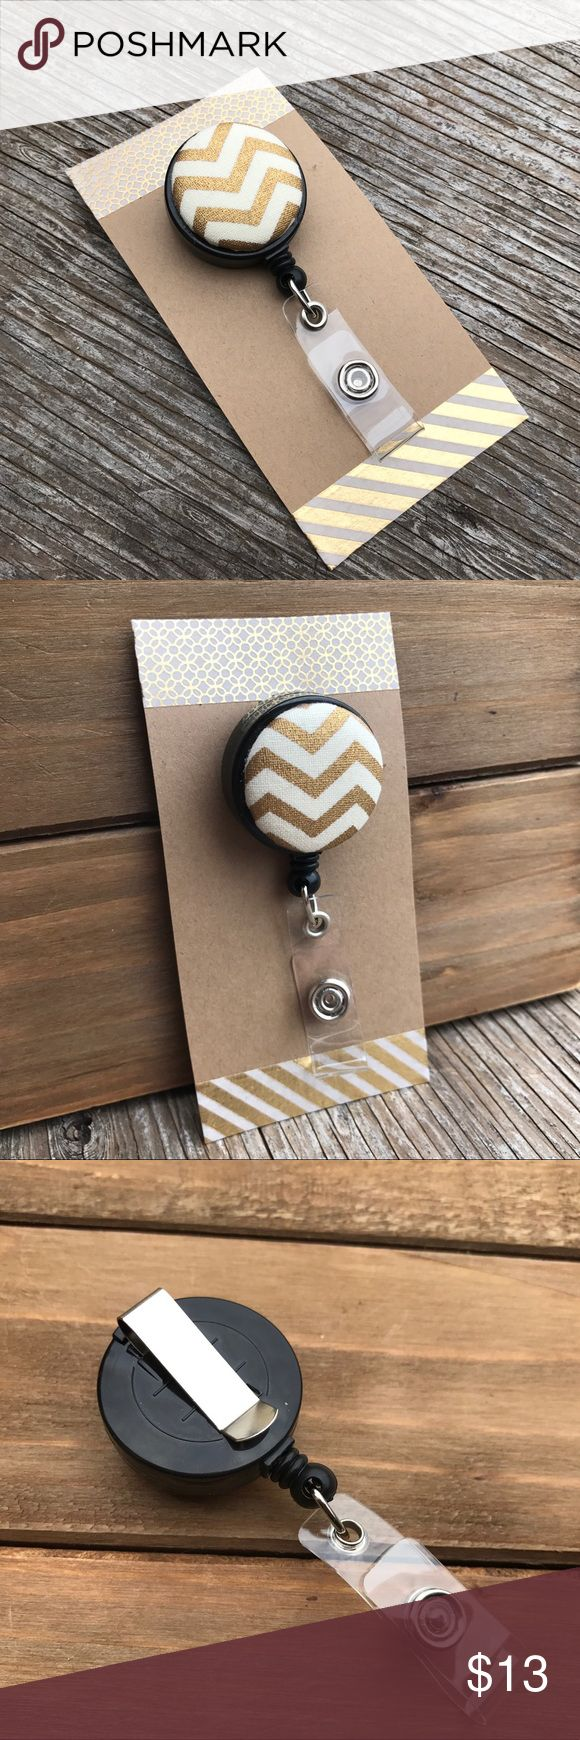 """Retractable Badge Reel•Chevron Print This adorable badge reel is the perfect way to snazz up your work attire! If you're required to wear one at work, why not spruce it up a bit!? Badge reels can be used for key holders, name tags, name tags, access cards, lanyards, belt loops and more. Made with gold & white chevron print fabric and securely adorned to a black retractable badge reel. Cord retracts up to 22"""". Comes with a clear plastic snap back & a swivel bottom. Handmade by me & brand new…"""